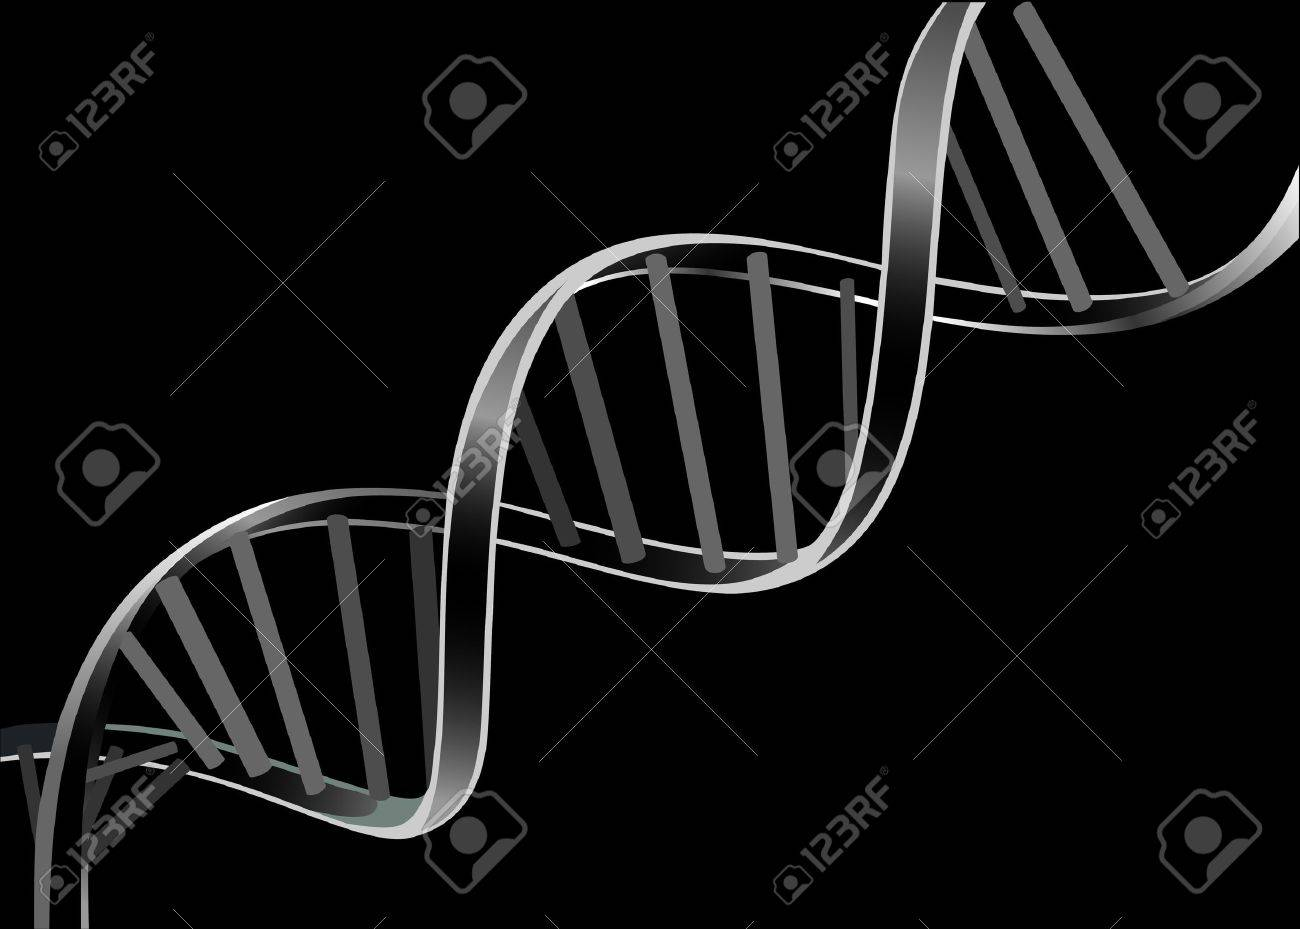 DNA strand isolated on black background - 17483848